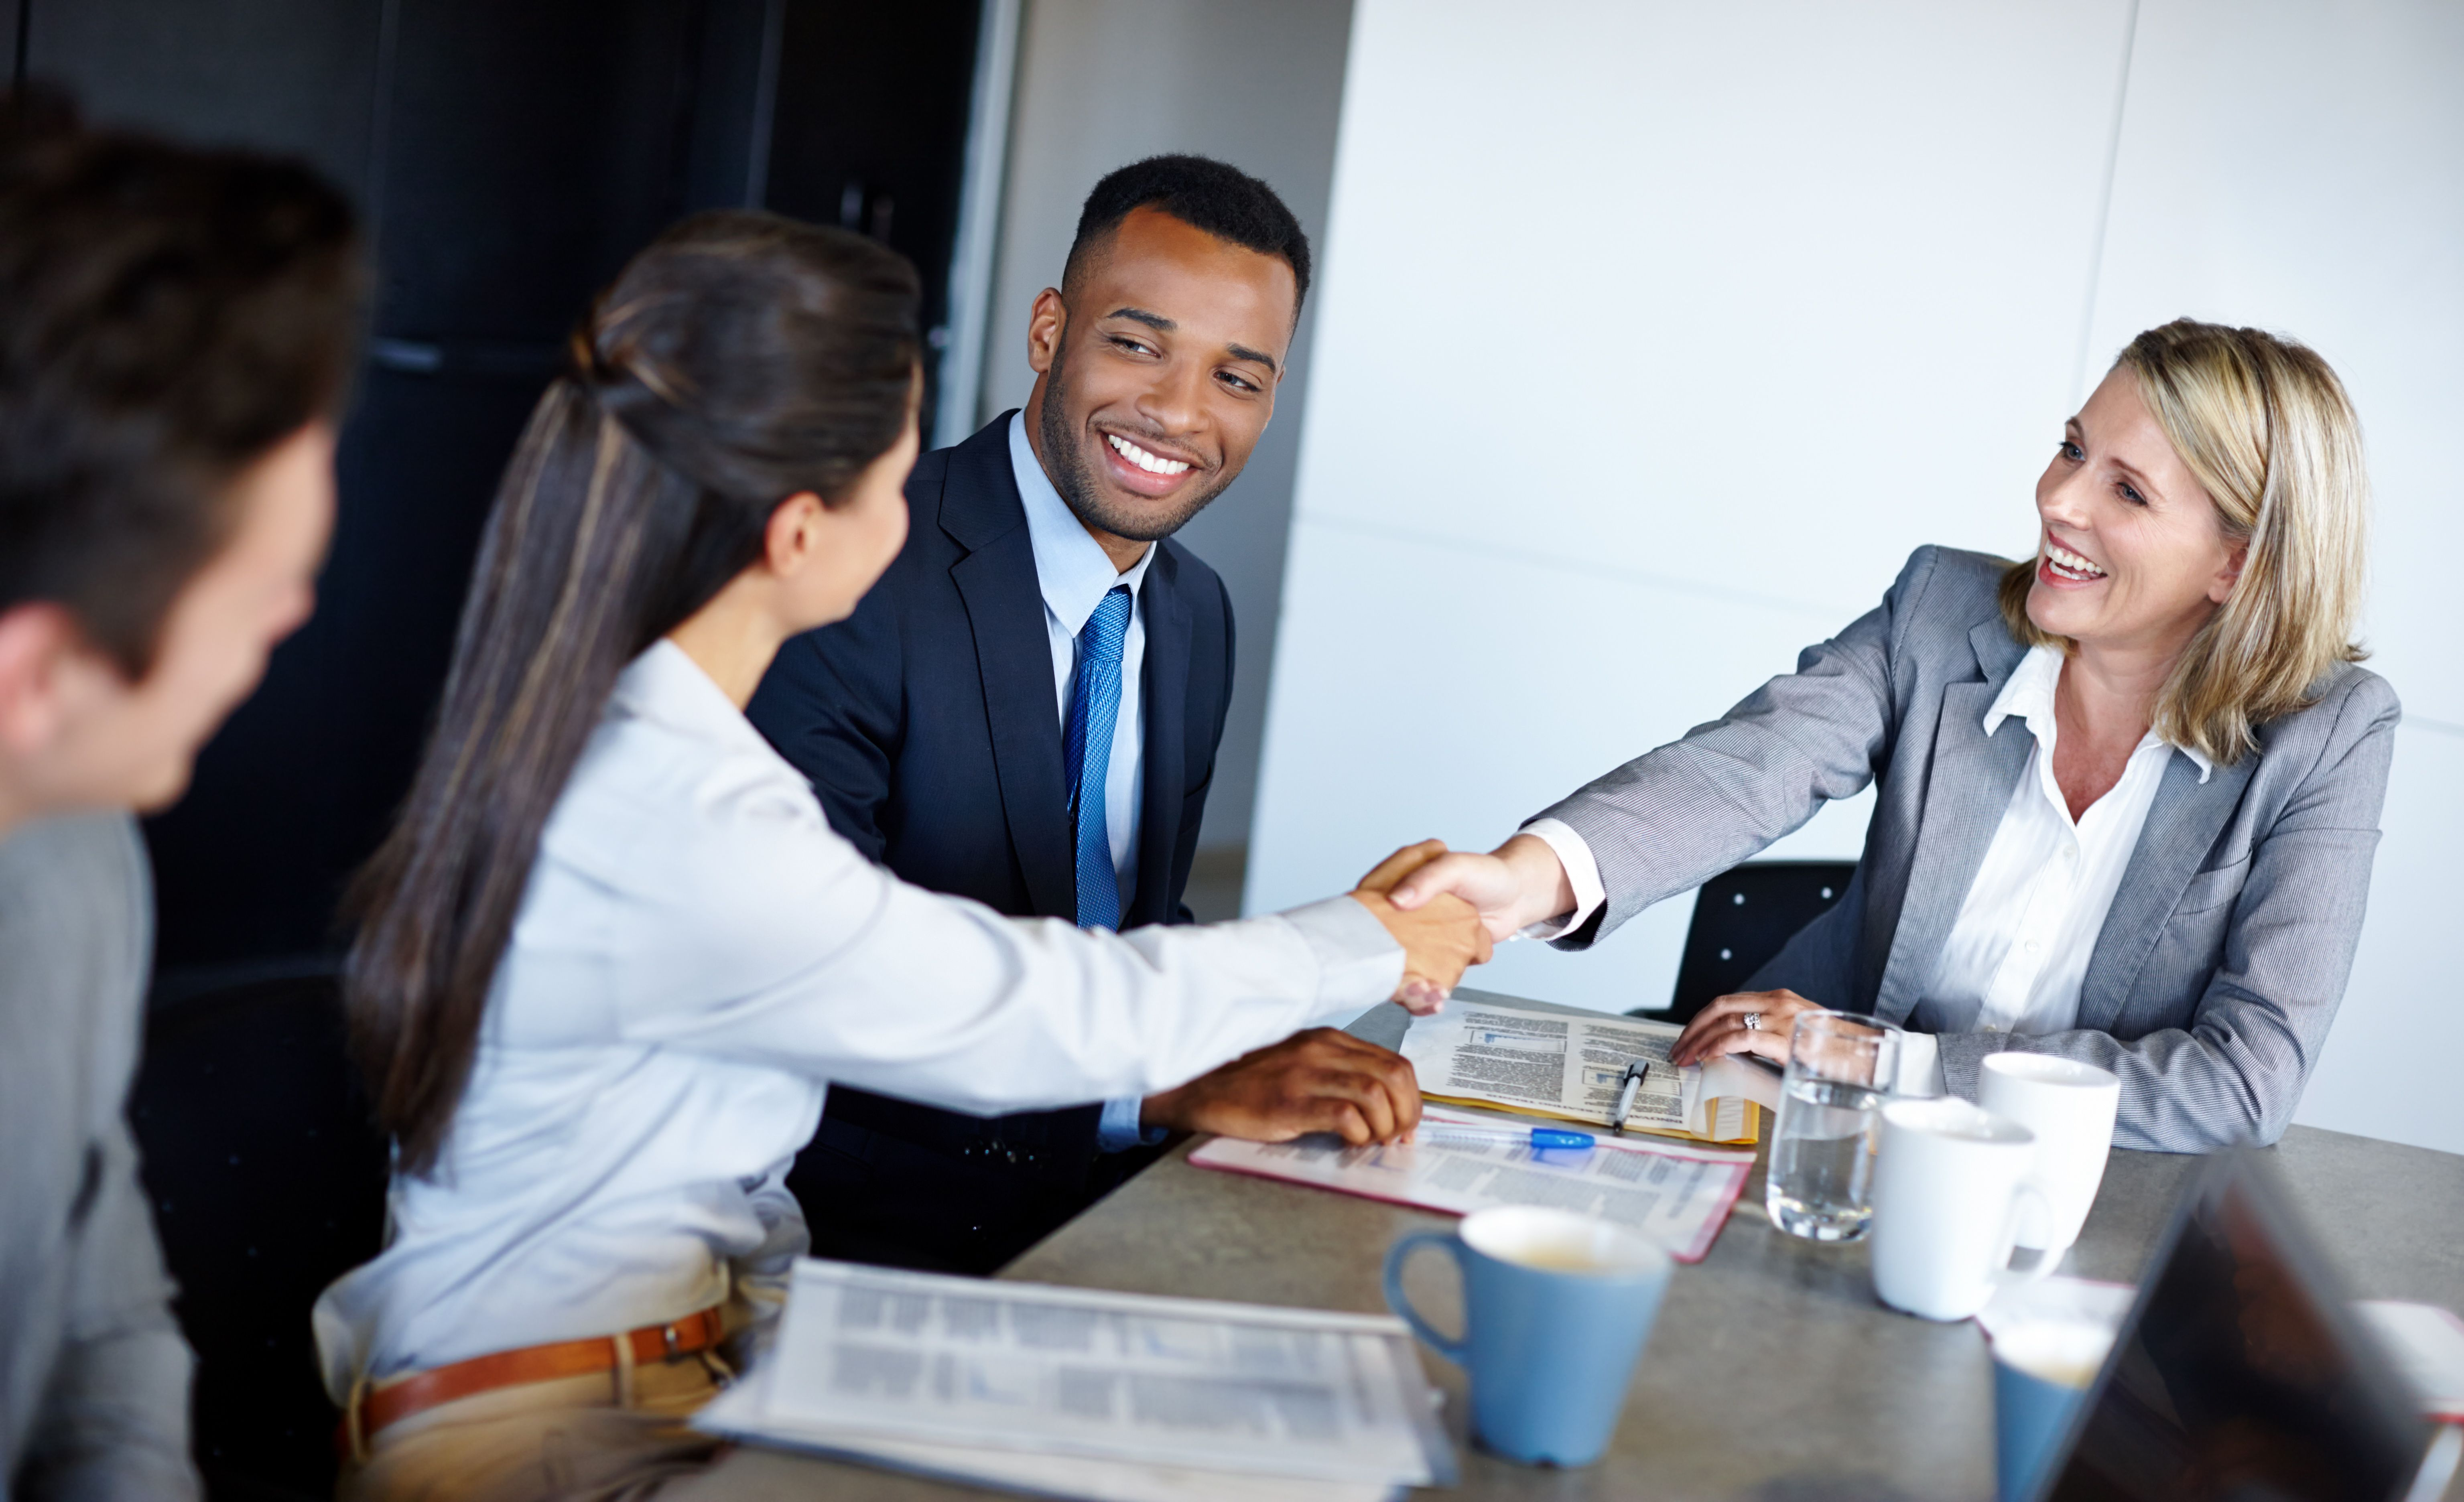 Top 10 Job Interview Etiquette Tips